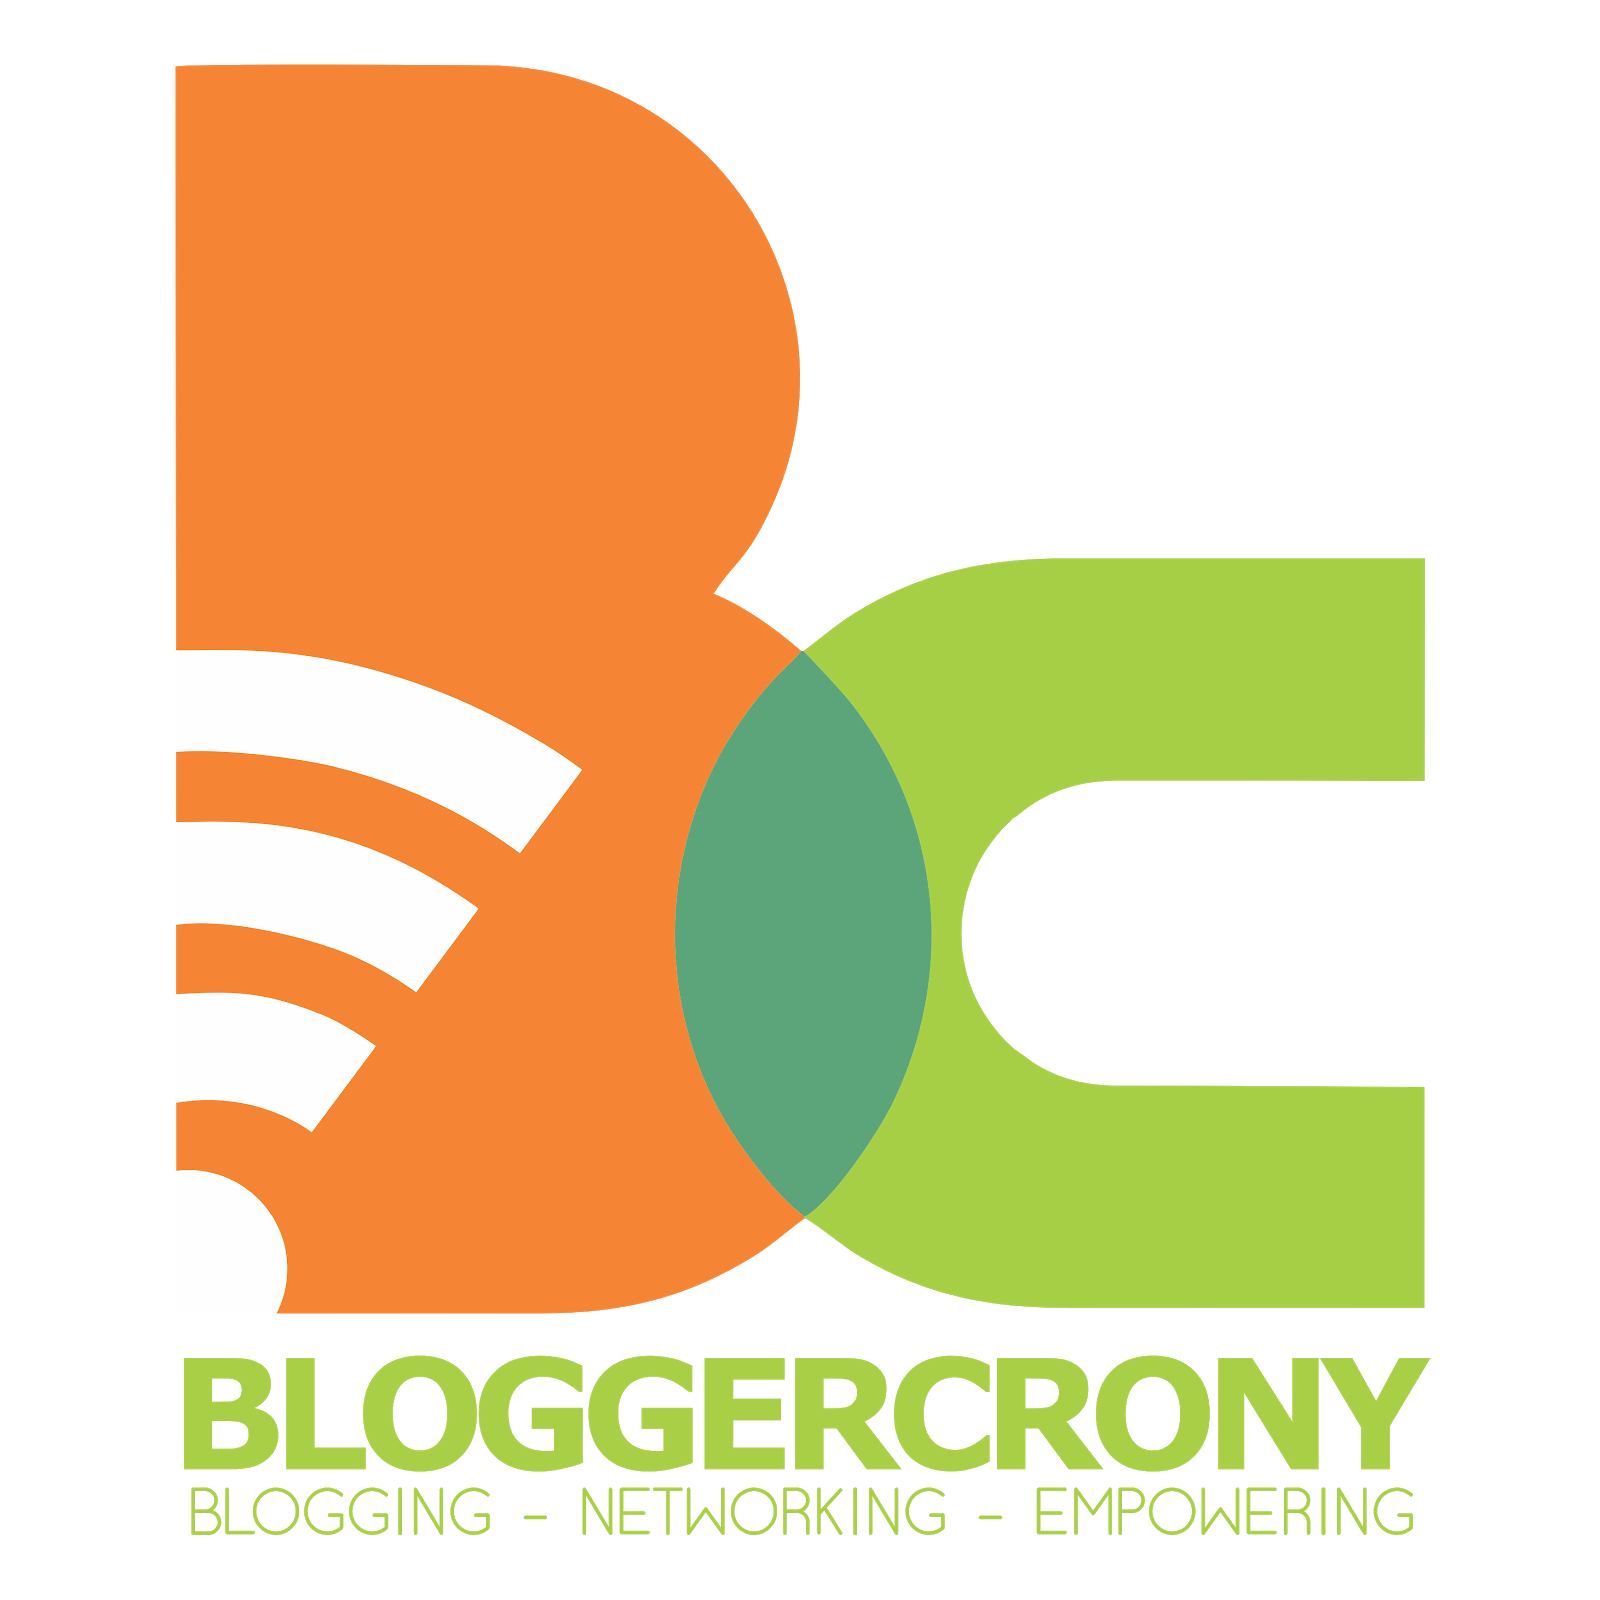 Bloggercrony Community